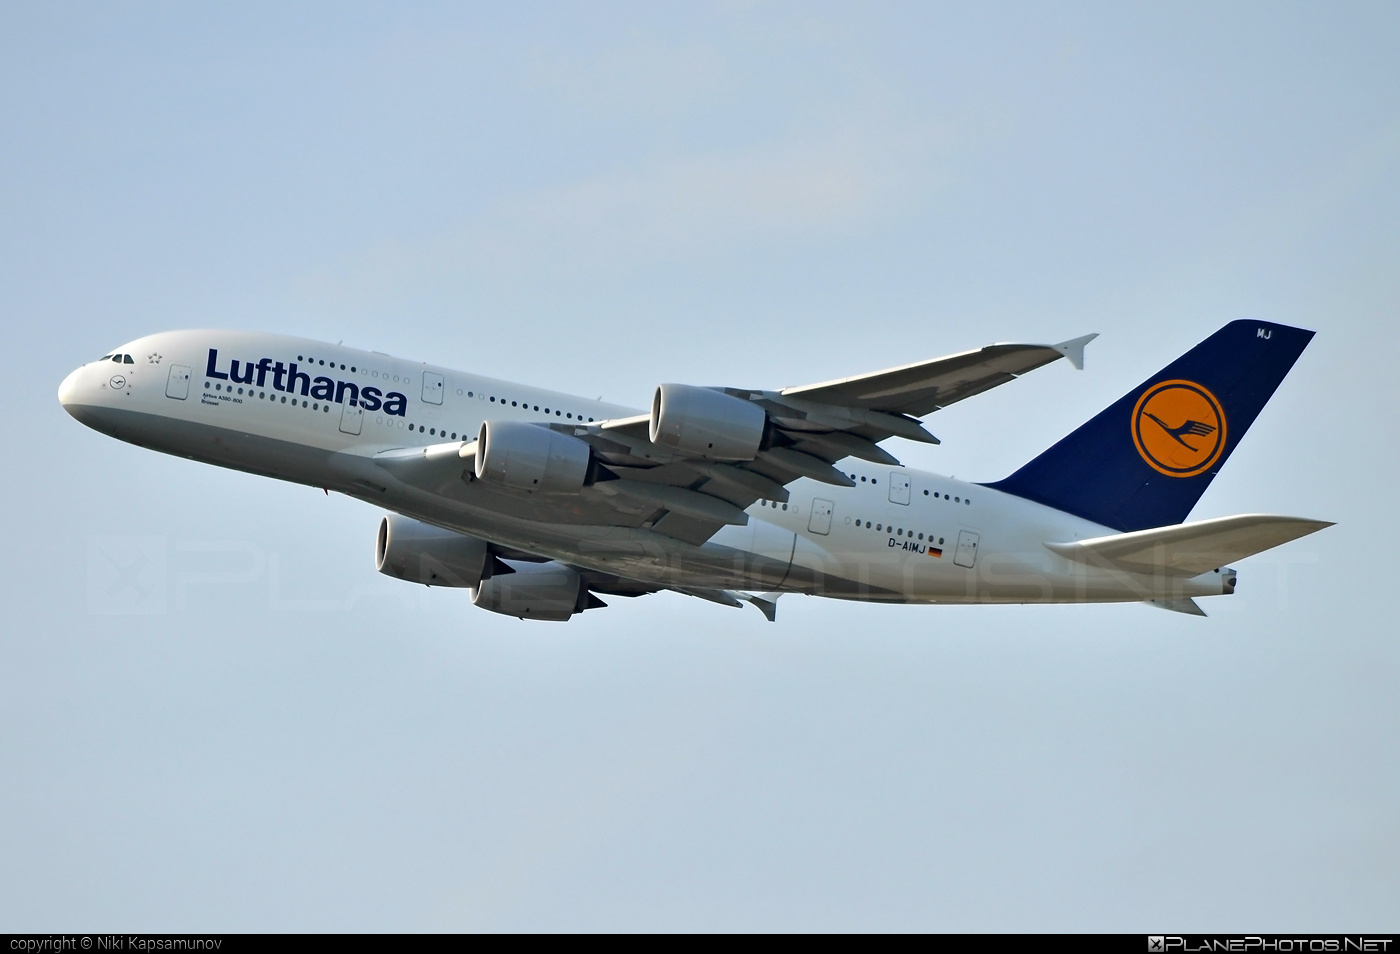 Airbus A380-841 - D-AIMJ operated by Lufthansa #a380 #a380family #airbus #airbus380 #lufthansa